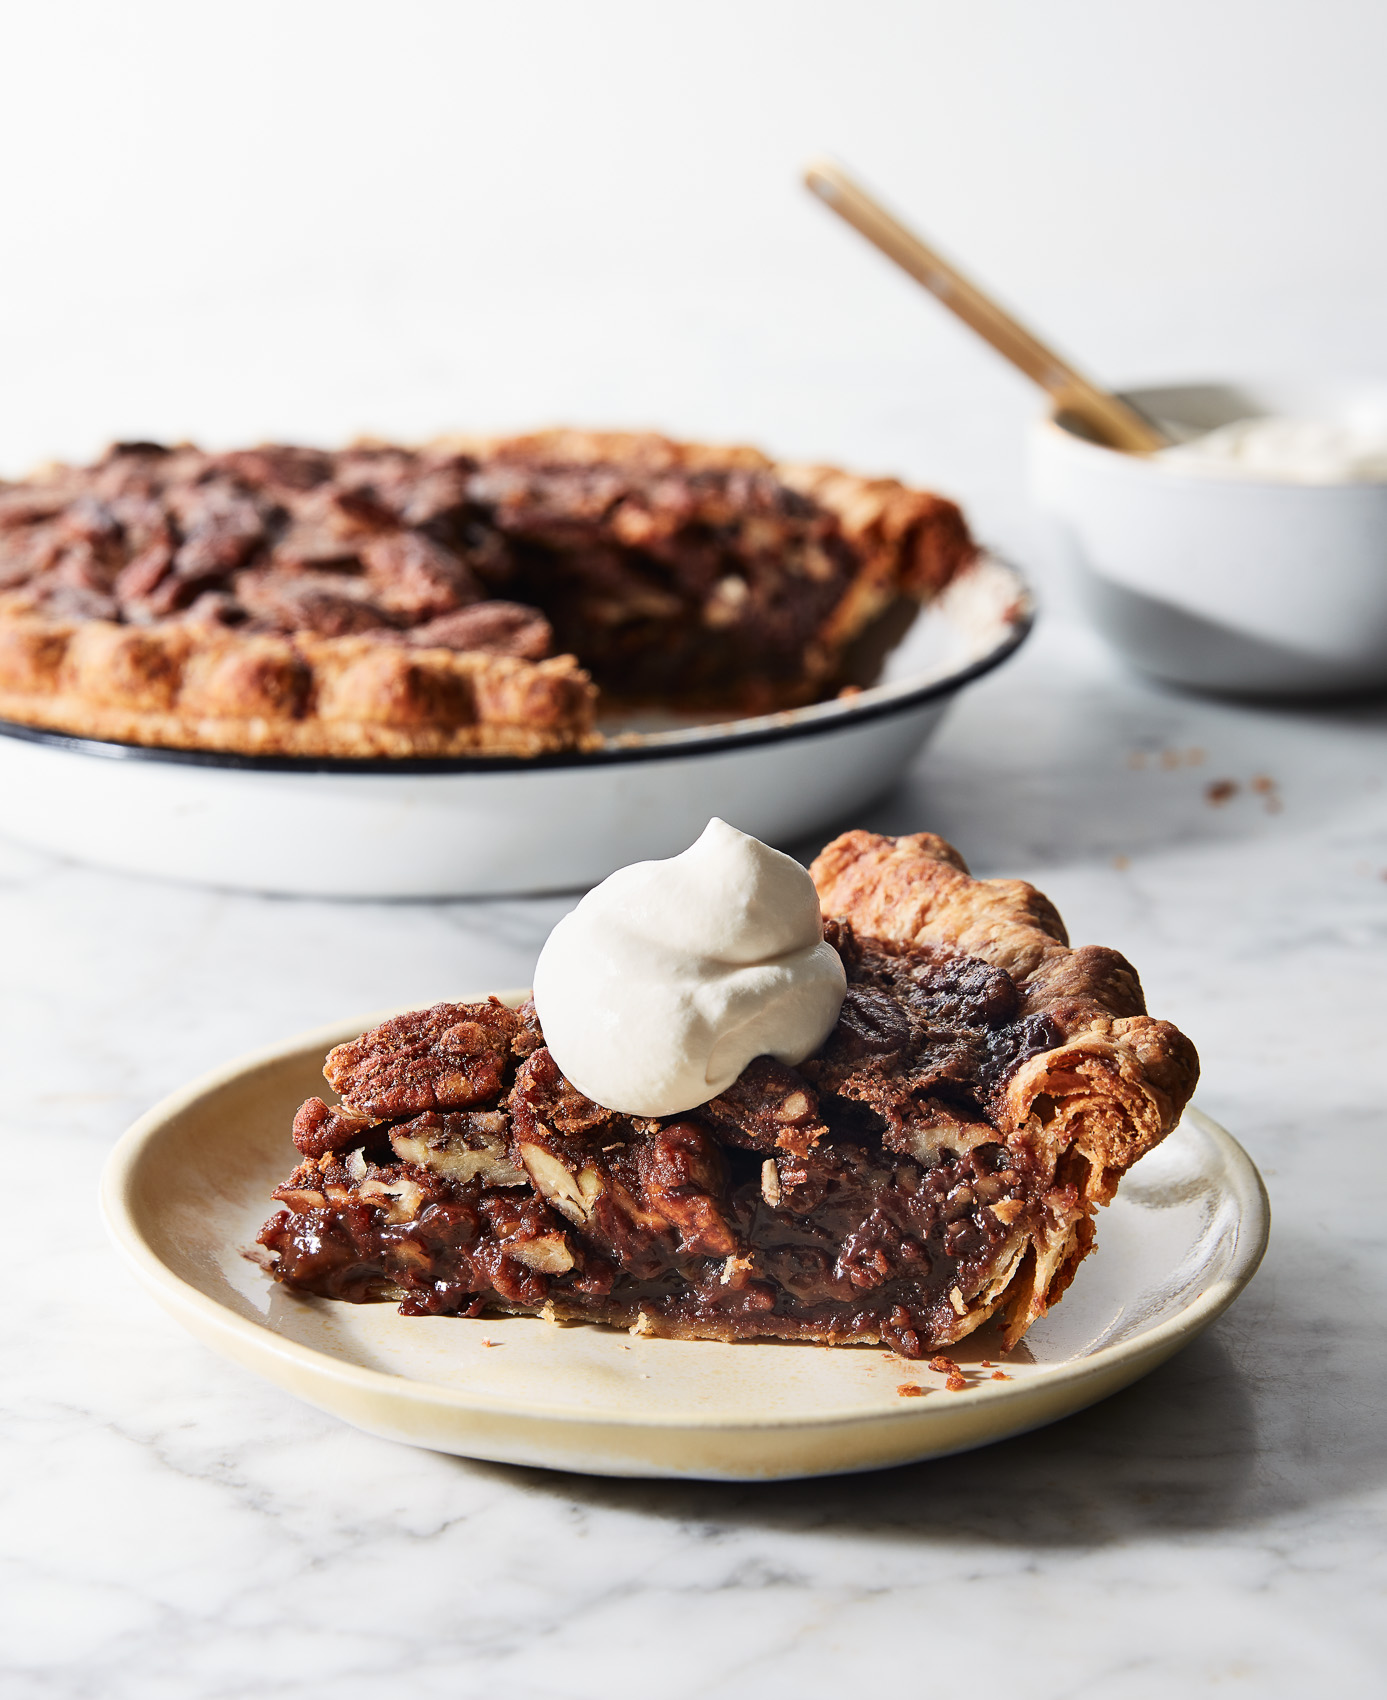 CH4_Black-Bottom-Pecan-Pie_erin-mcdowell_book-on-pie_2019-11-21_mark-weinberg_5036